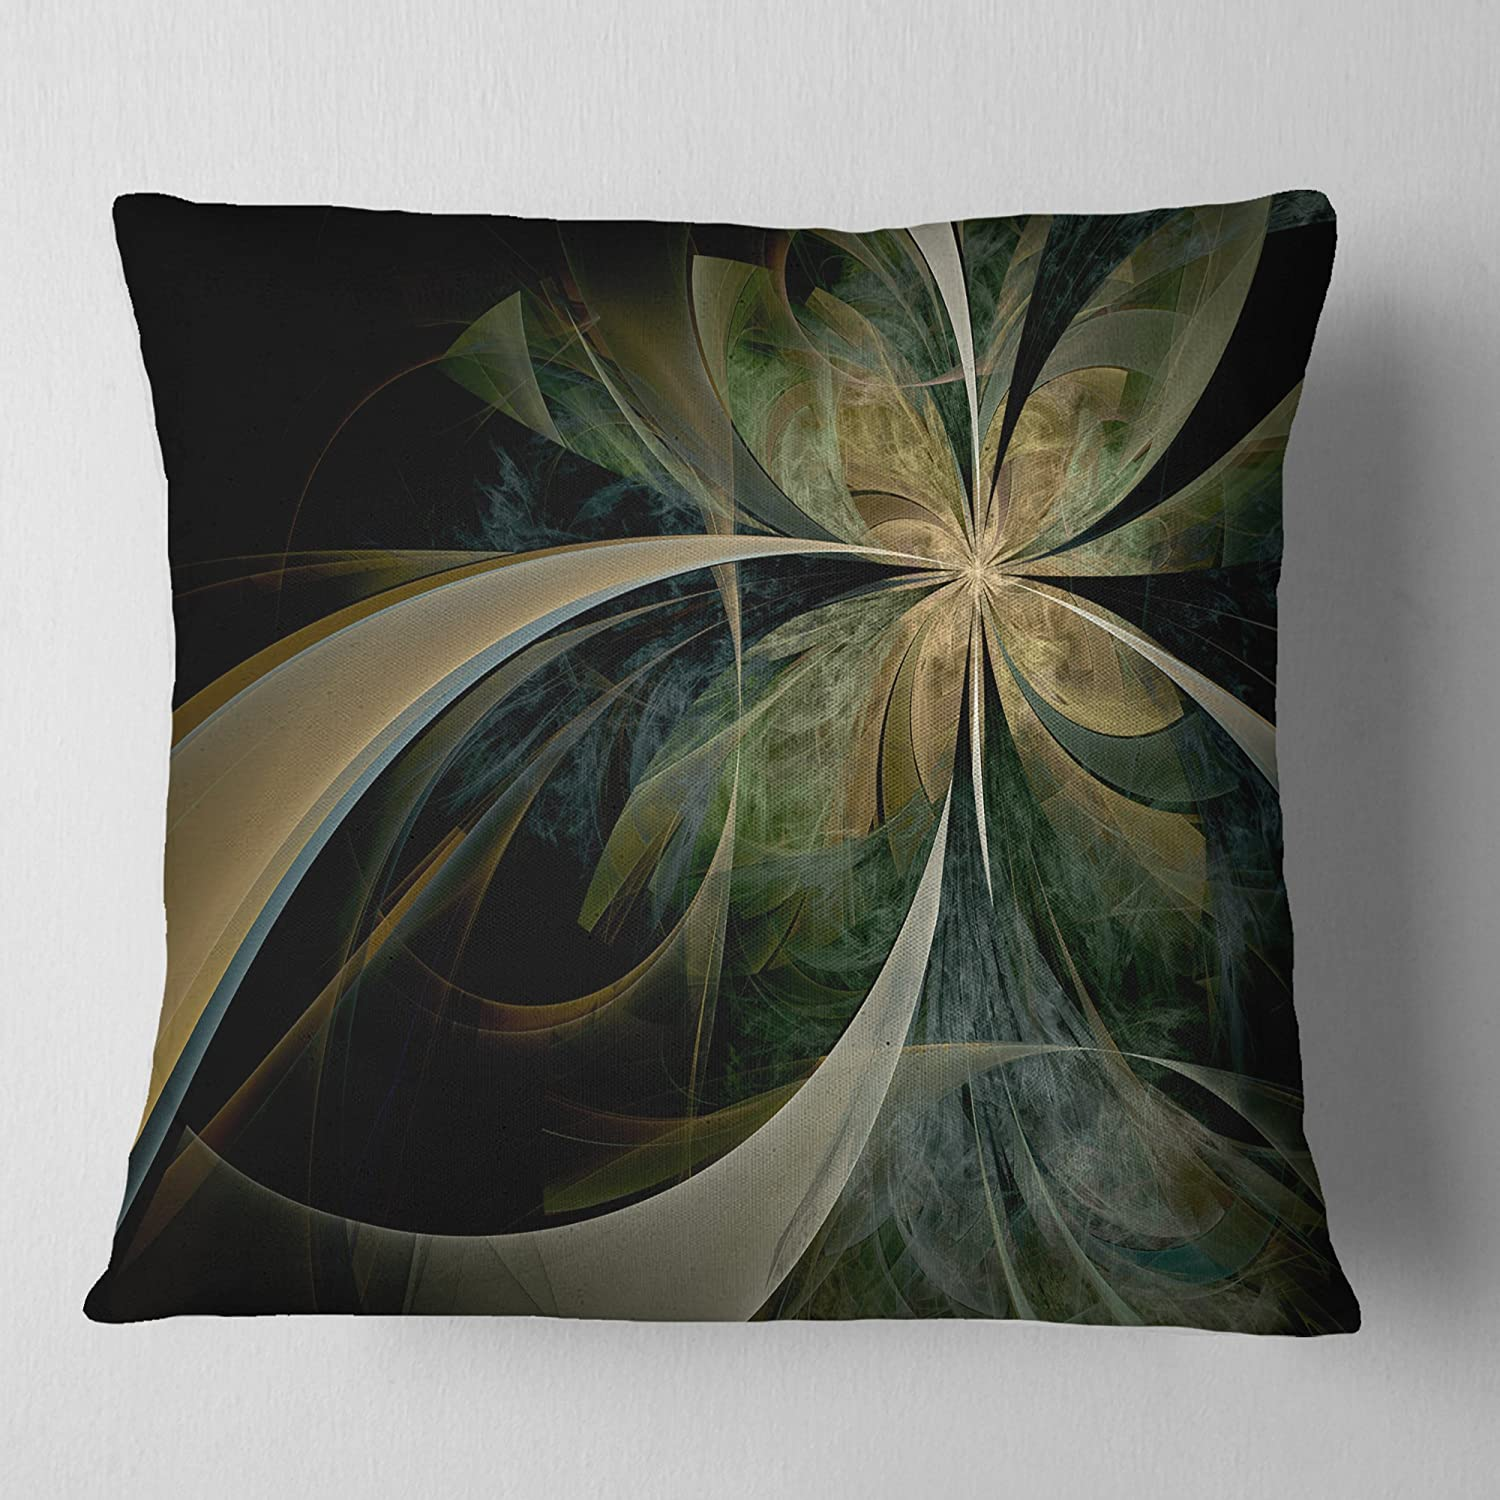 Sofa Throw Pillow x 18 in Designart CU12028-18-18 Brown and Gold Symmetrical Fractal Design Floral Cushion Cover for Living Room 18 in Insert Printed On Both Side in